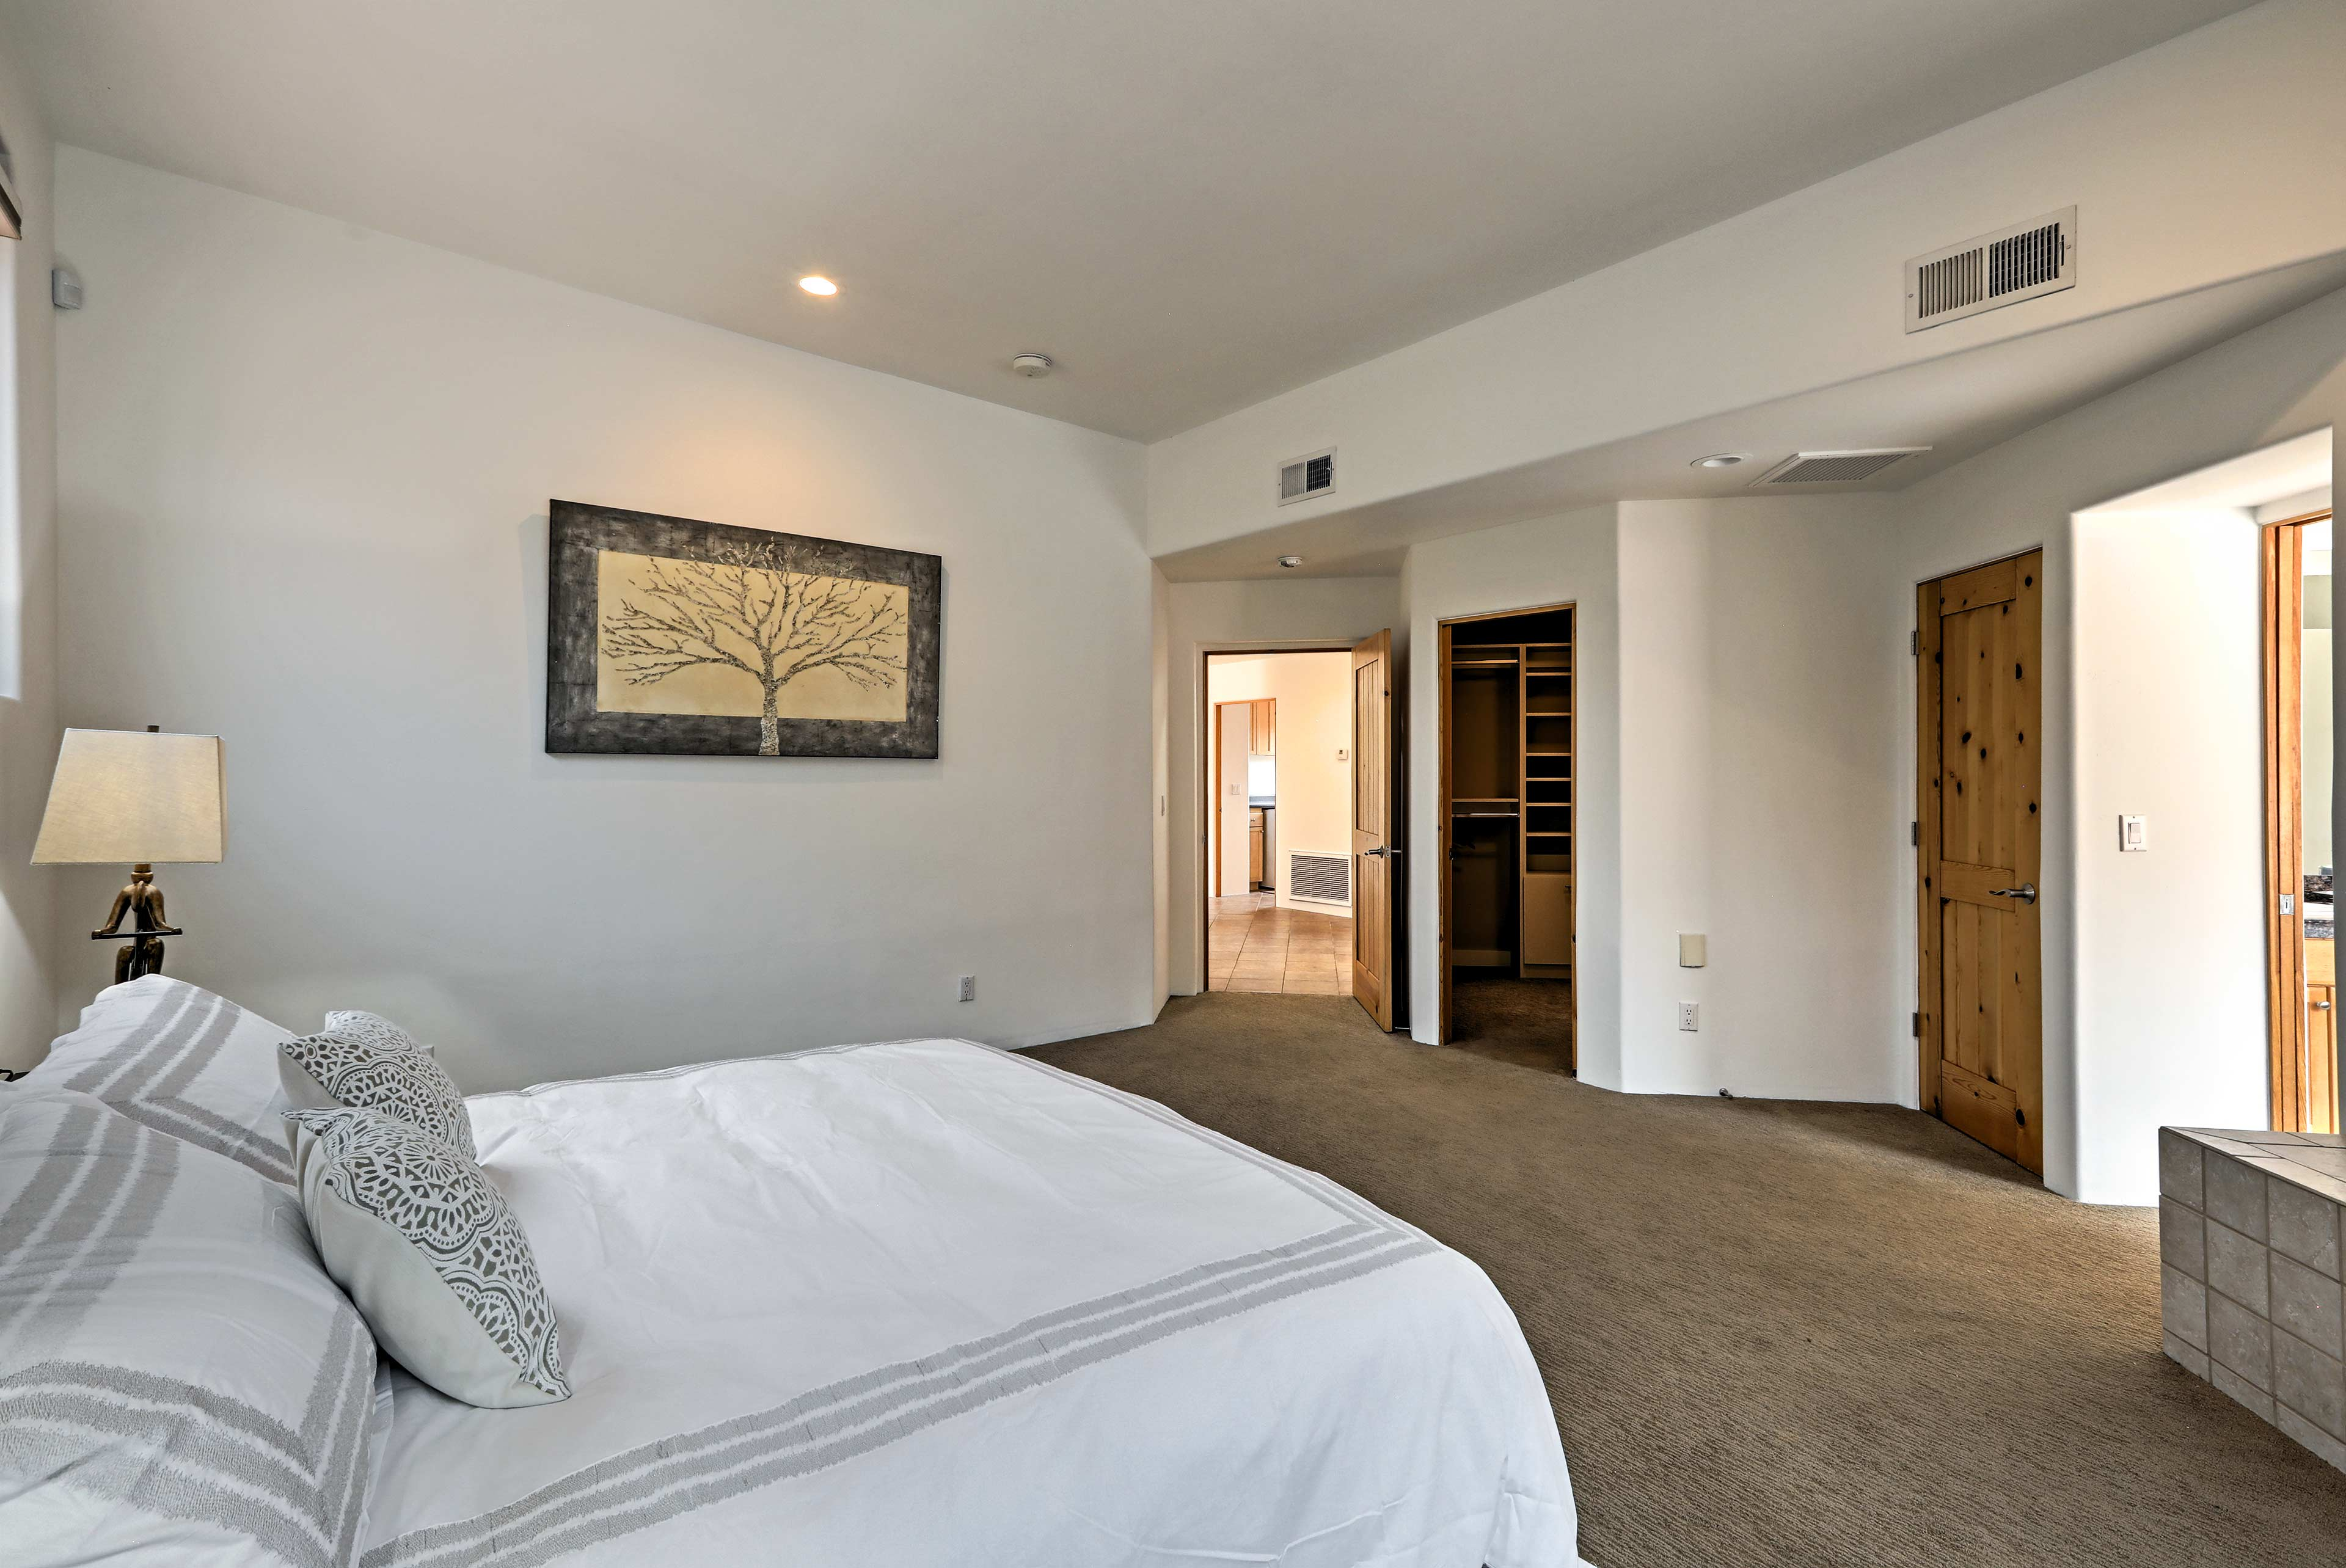 The master bedroom also boasts a large walk-in closet.